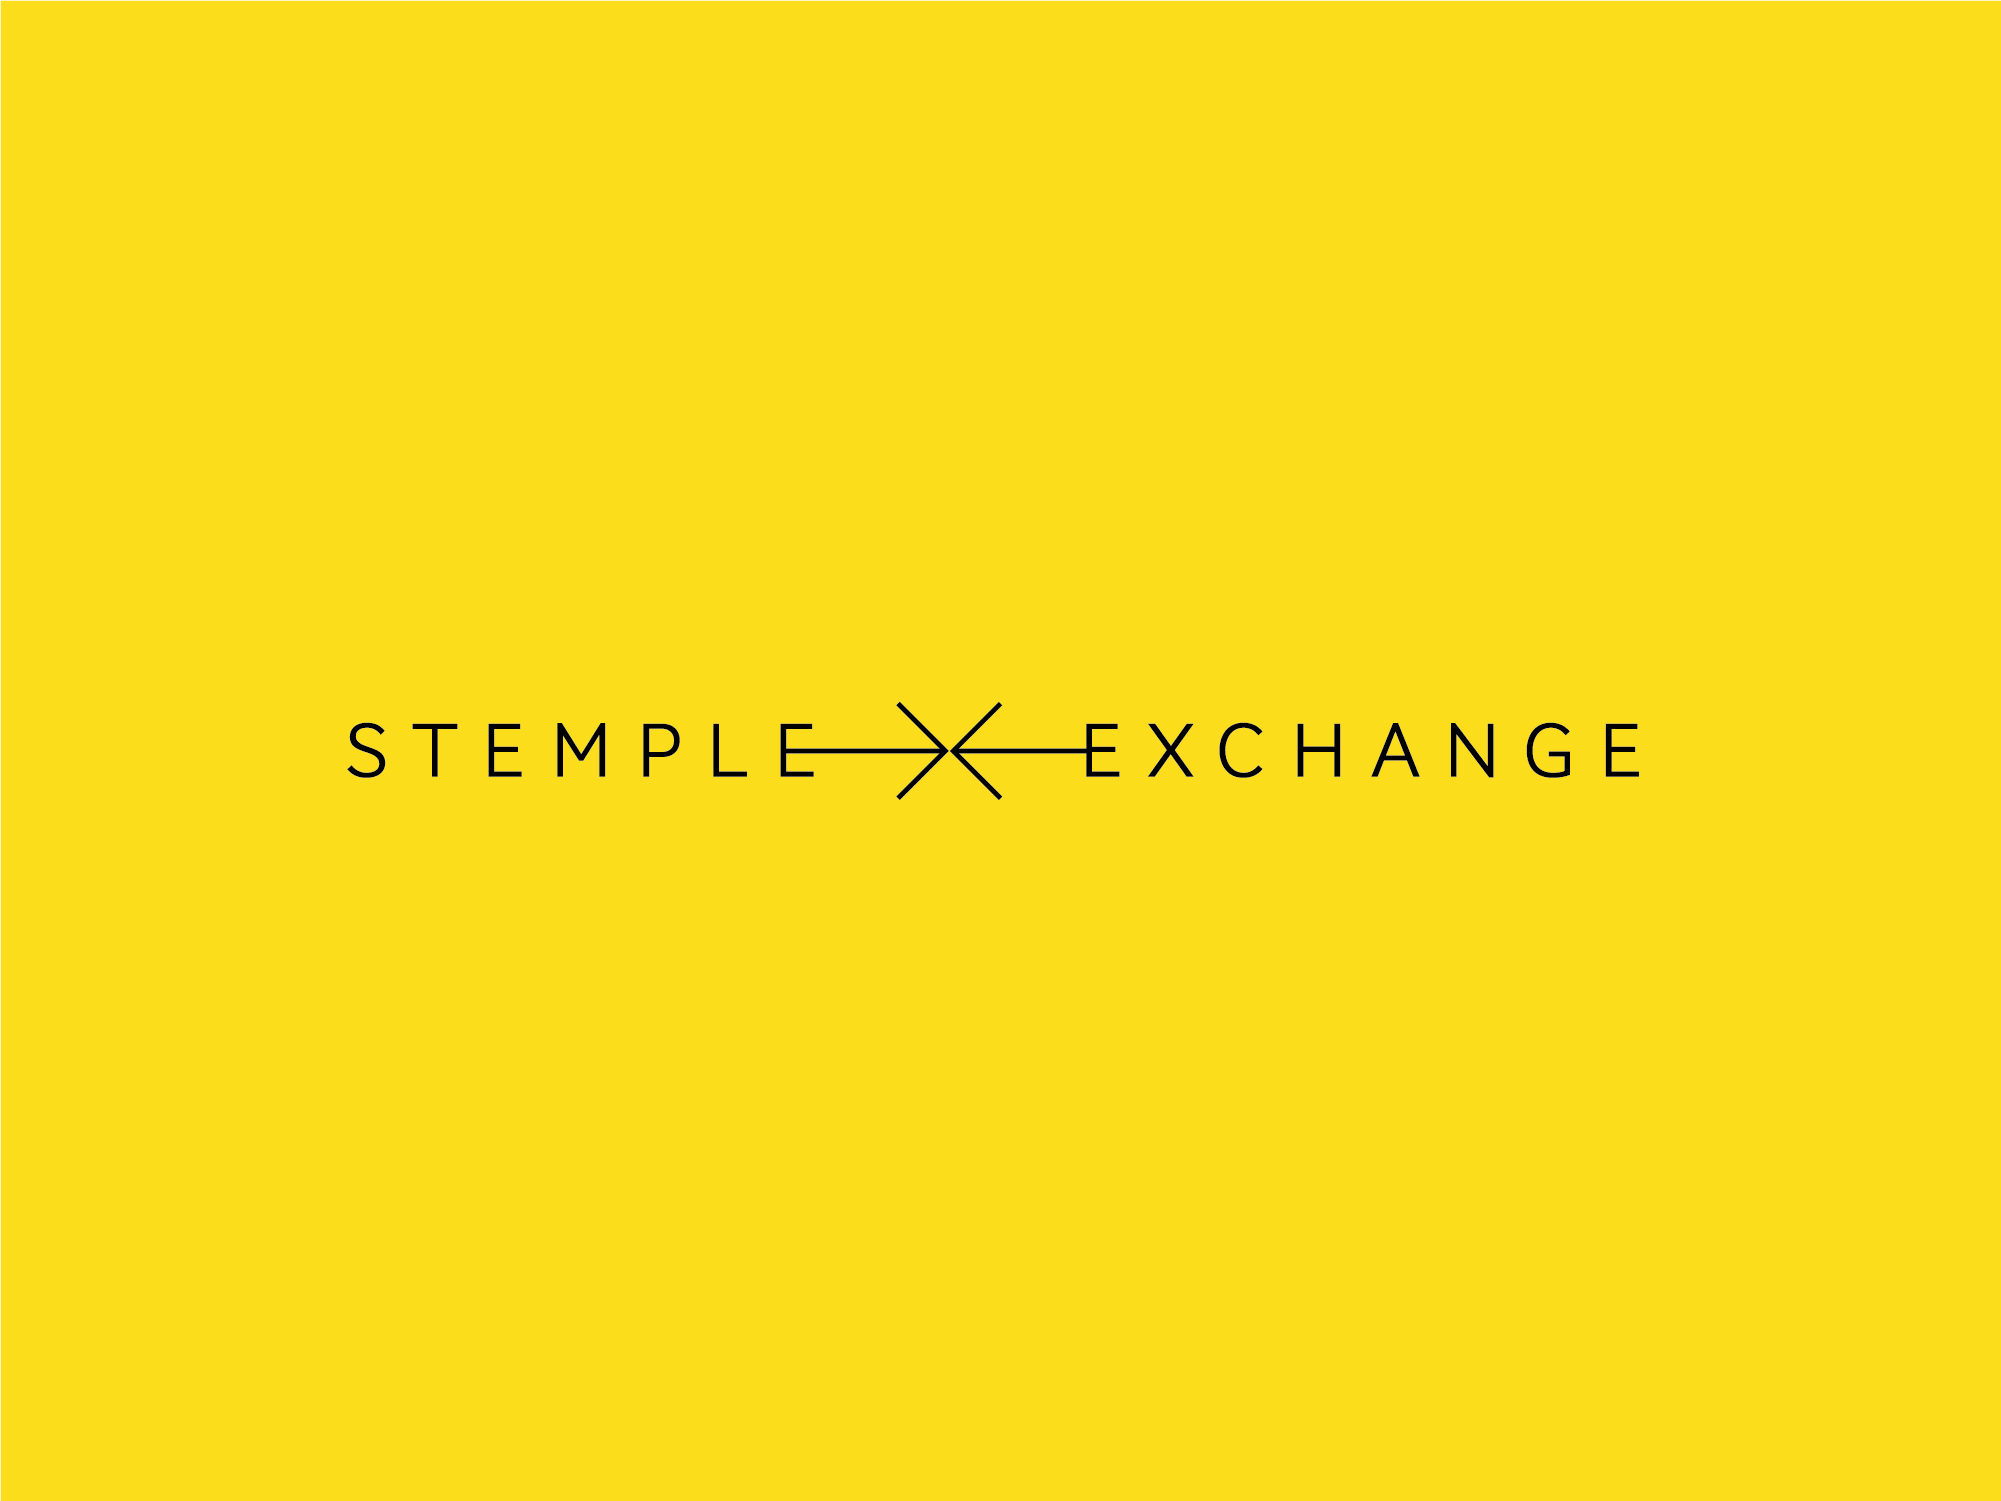 Cover image: Stemple Exchange